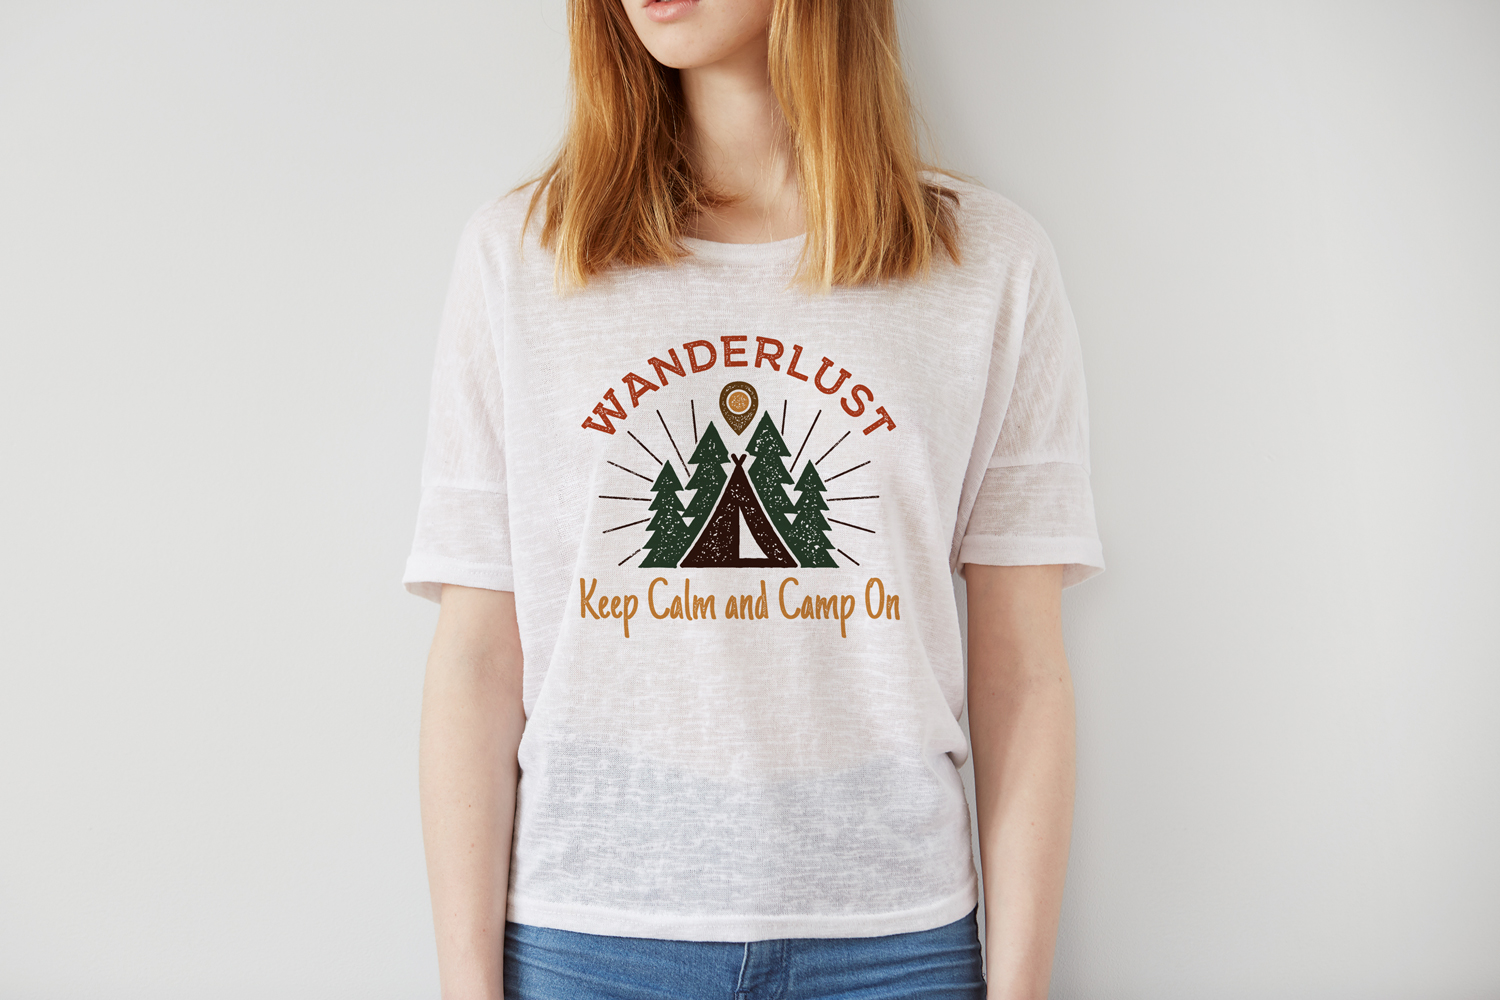 Download Free Wanderlust Print Design Camping Retro Graphic By Jeksongraphics Creative Fabrica for Cricut Explore, Silhouette and other cutting machines.